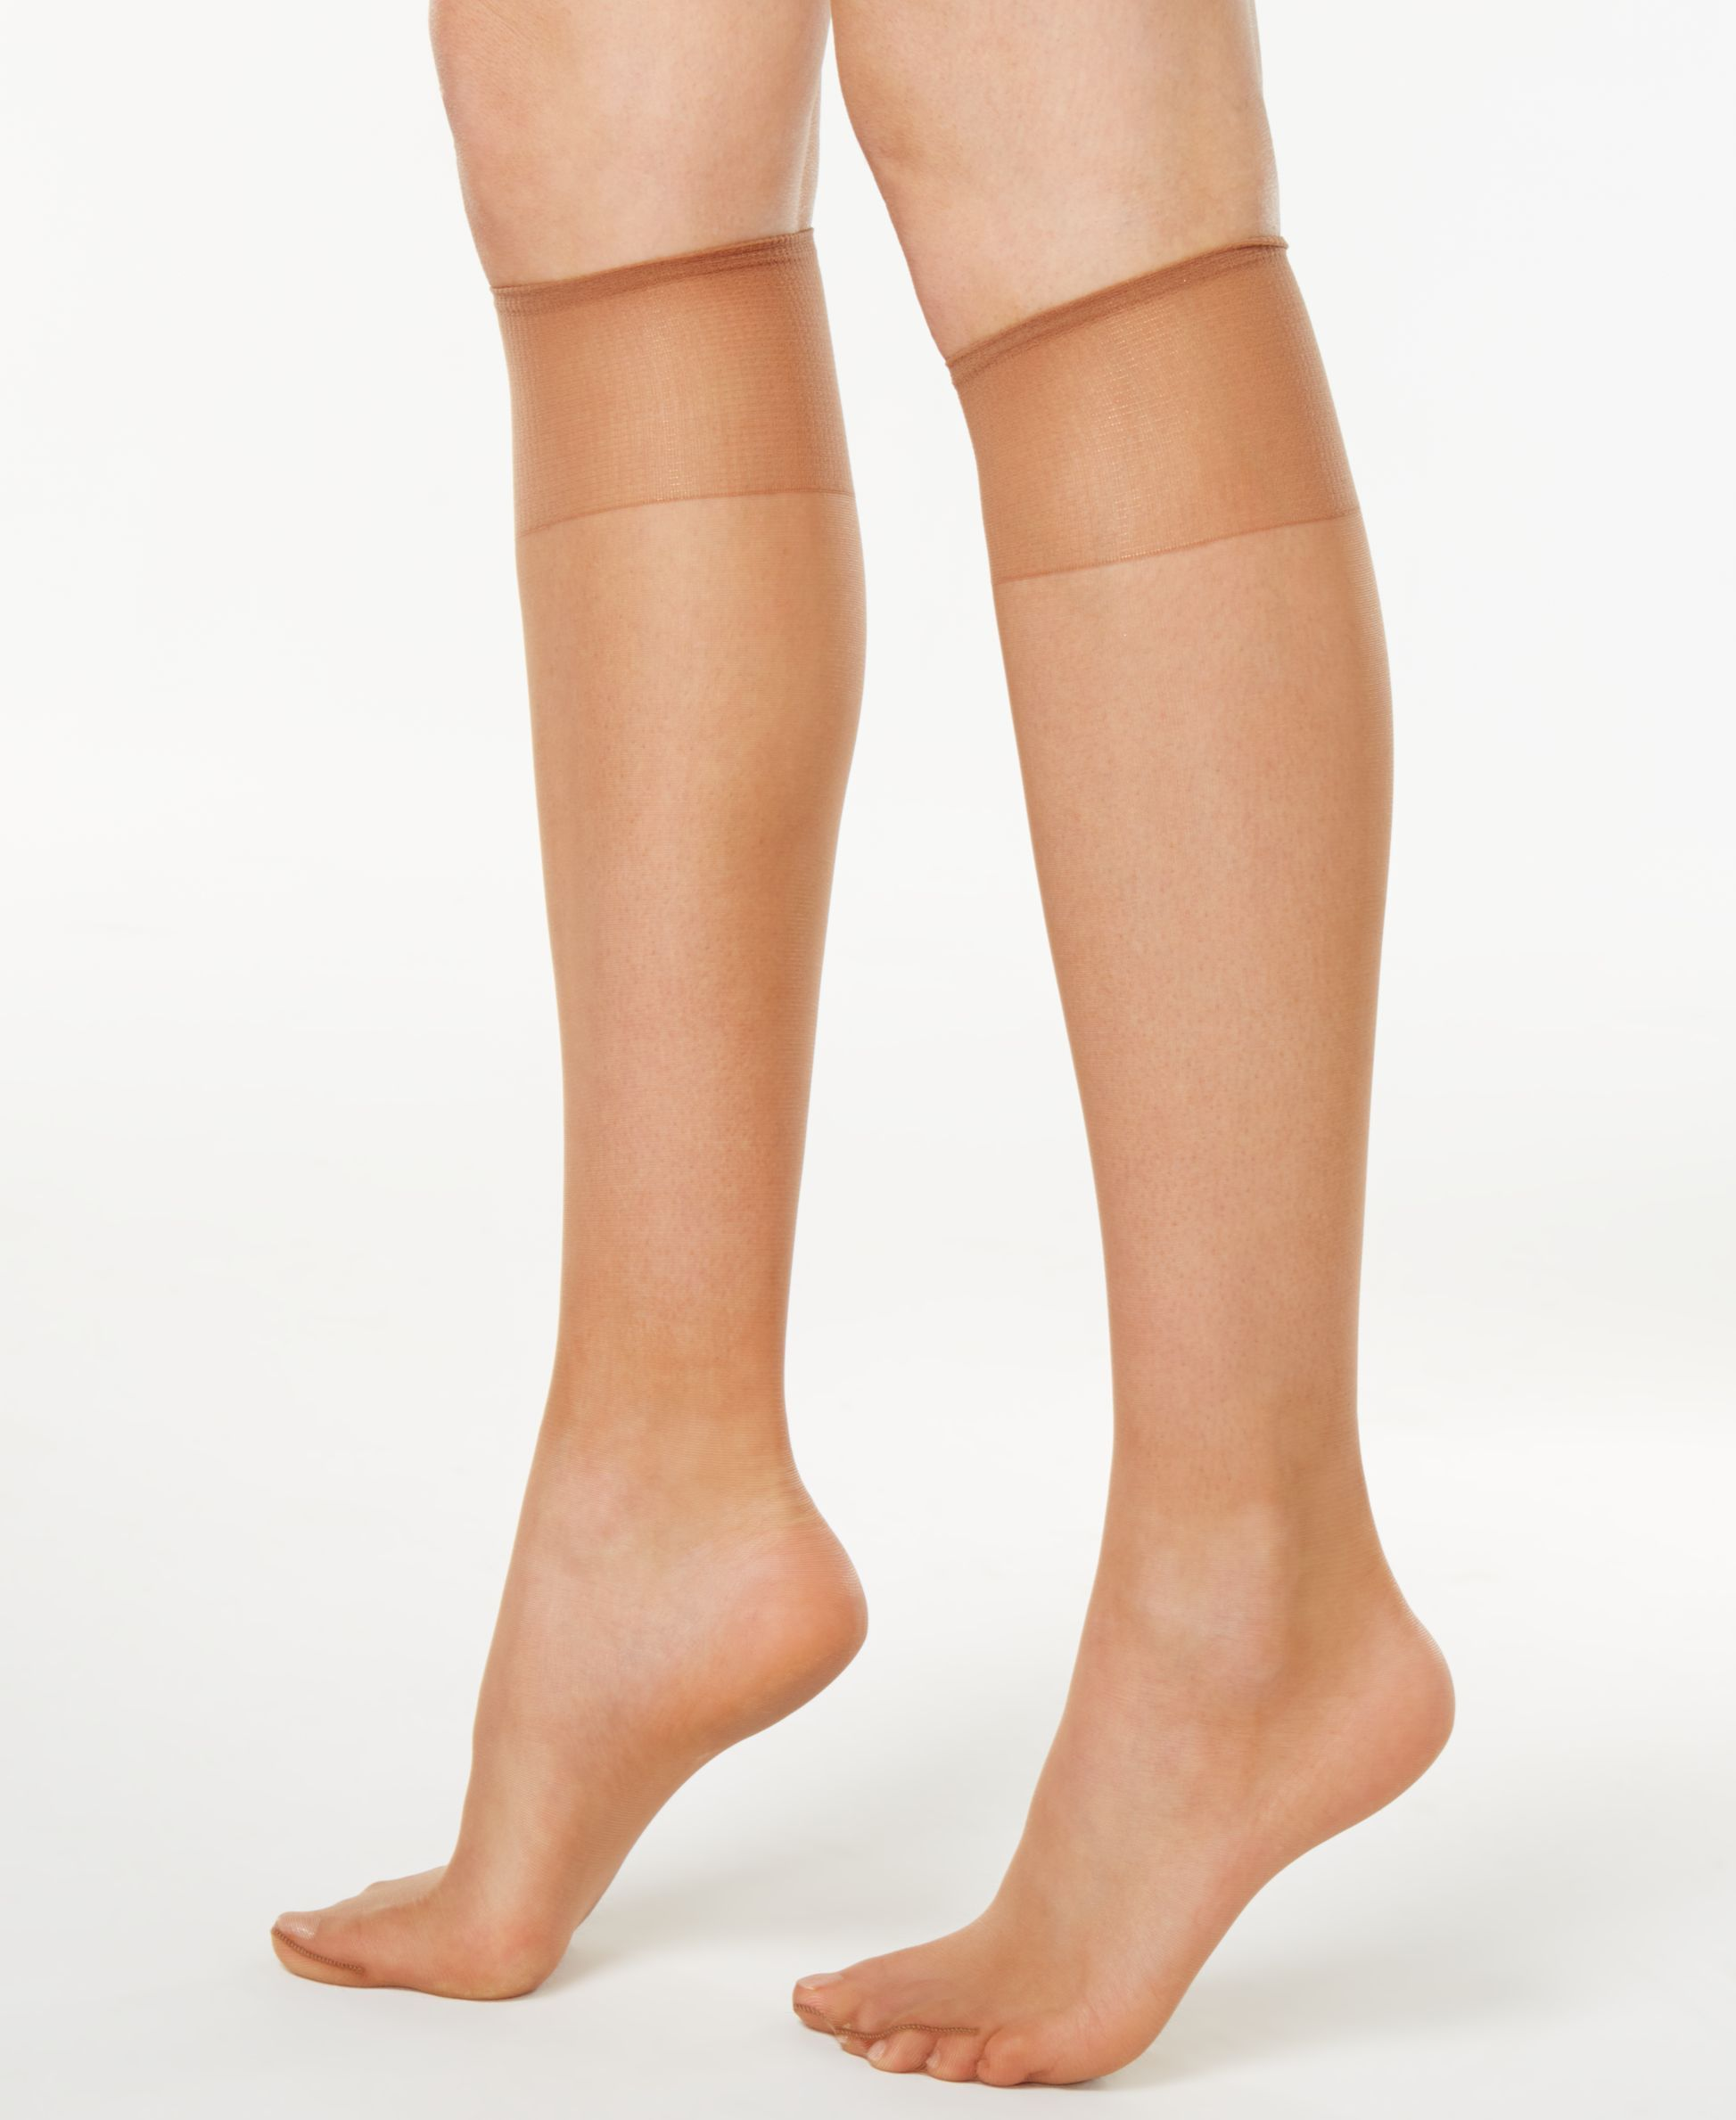 Hanes Women/'s Silk Reflections Plus Size Fishnet Tights Nude